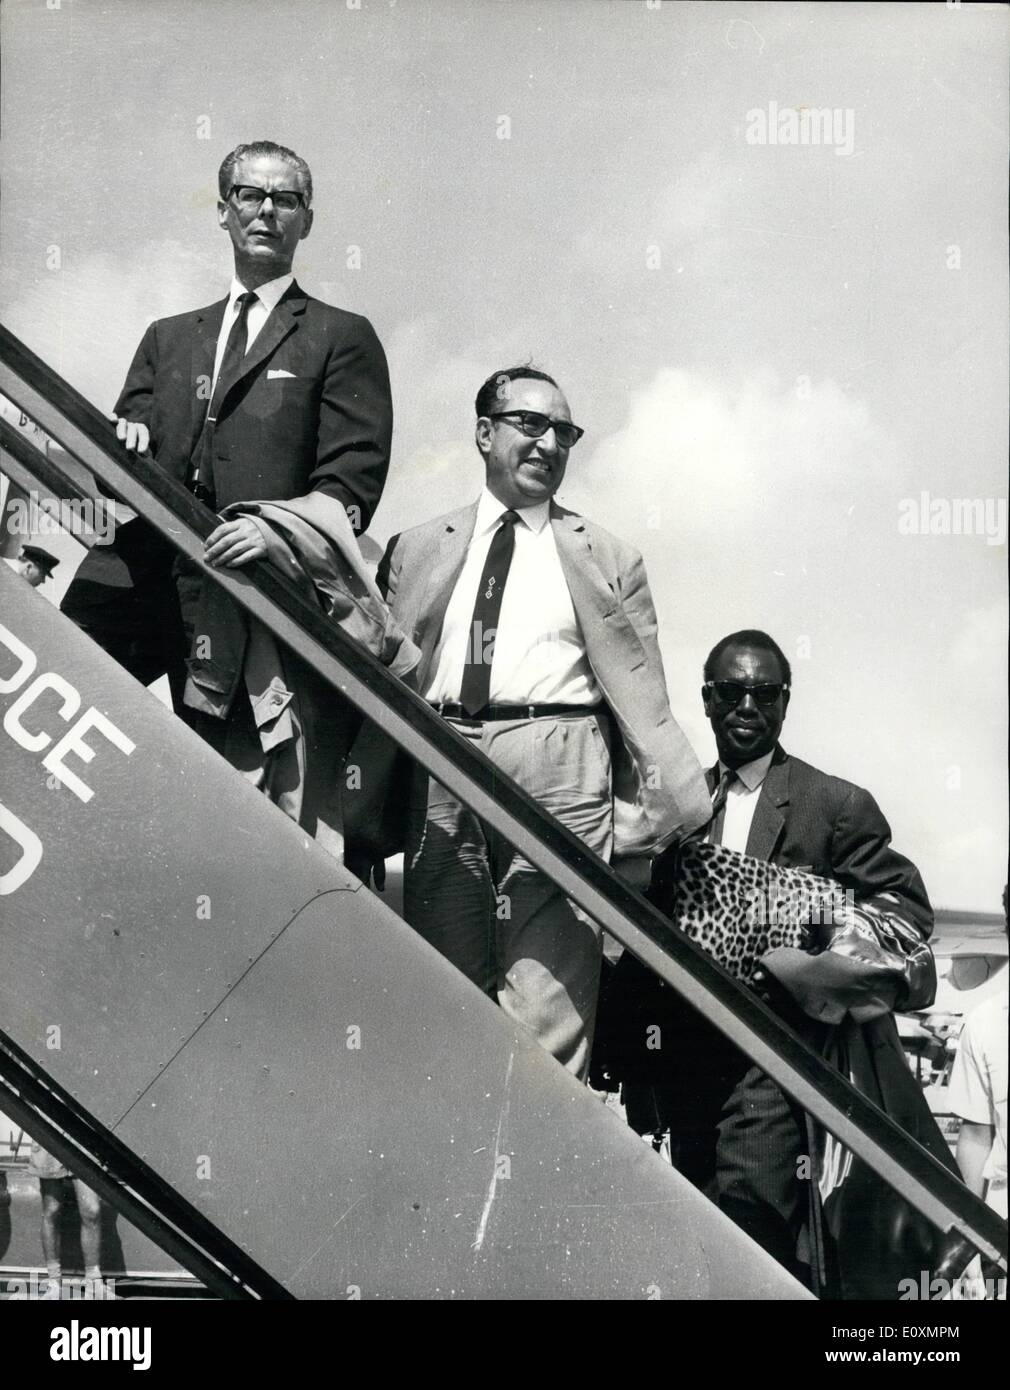 Apr. 04, 1967 - The U.N. Fact-finding mission leave Aden After Accusing Britain of Lac of Co-operation: The United Nations fact-finding mission abruptly left Aden after alleging lack of co-operation by Britain. The three-man mission left by air but there was some considerable delay when the U.N. men objected to going through the routine of having their luggage searohed. Photo shows Three-men U.N. Mission Guerrero, Moussa Leo Keita and Abdul Sttar Shalizi, board the airfcraft for their flight to Rome. - Stock Image